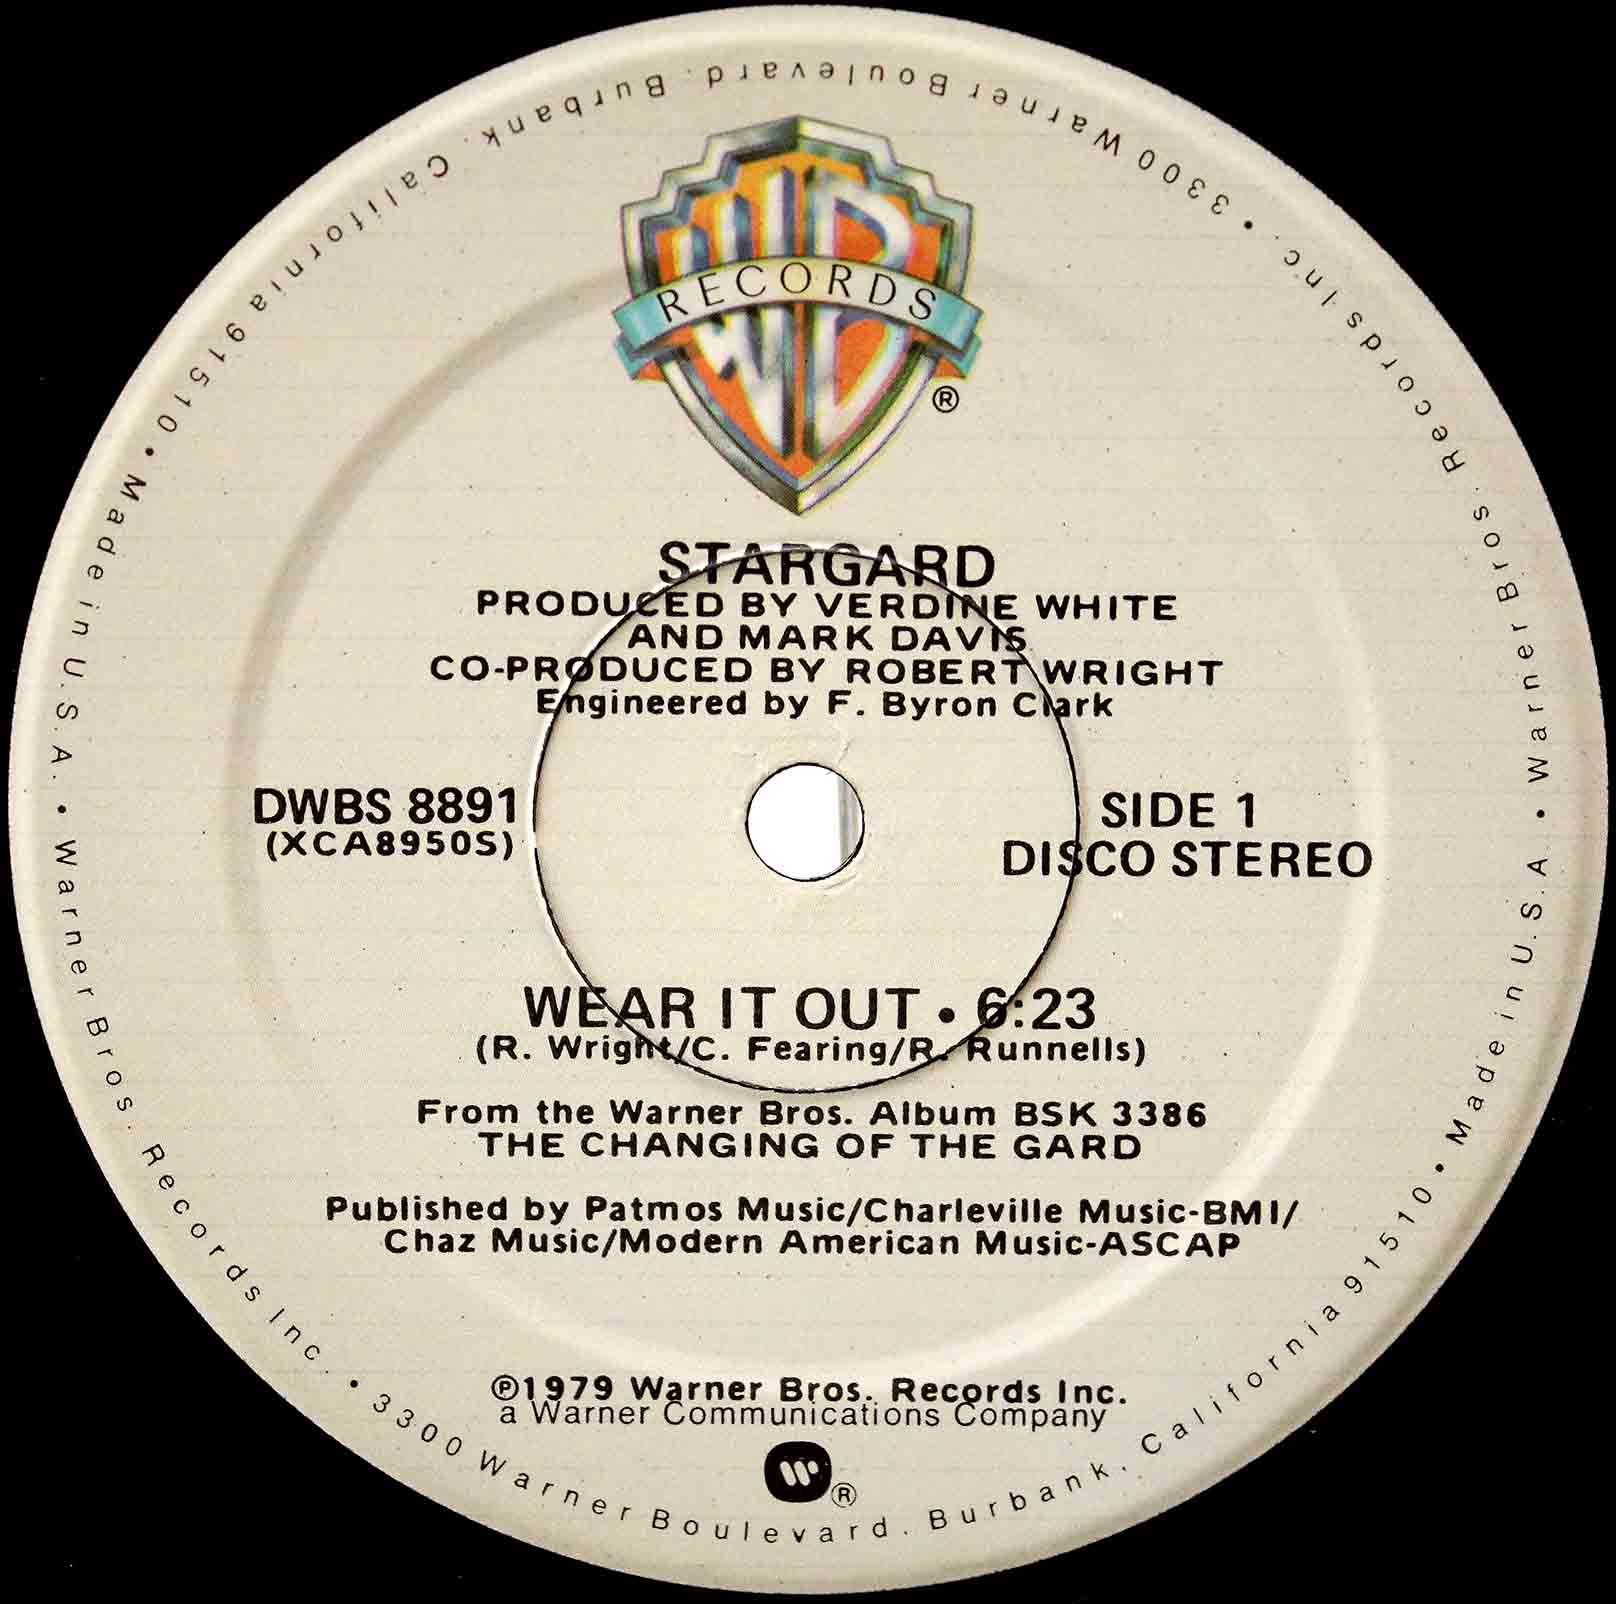 Stargard - Wear it out 03